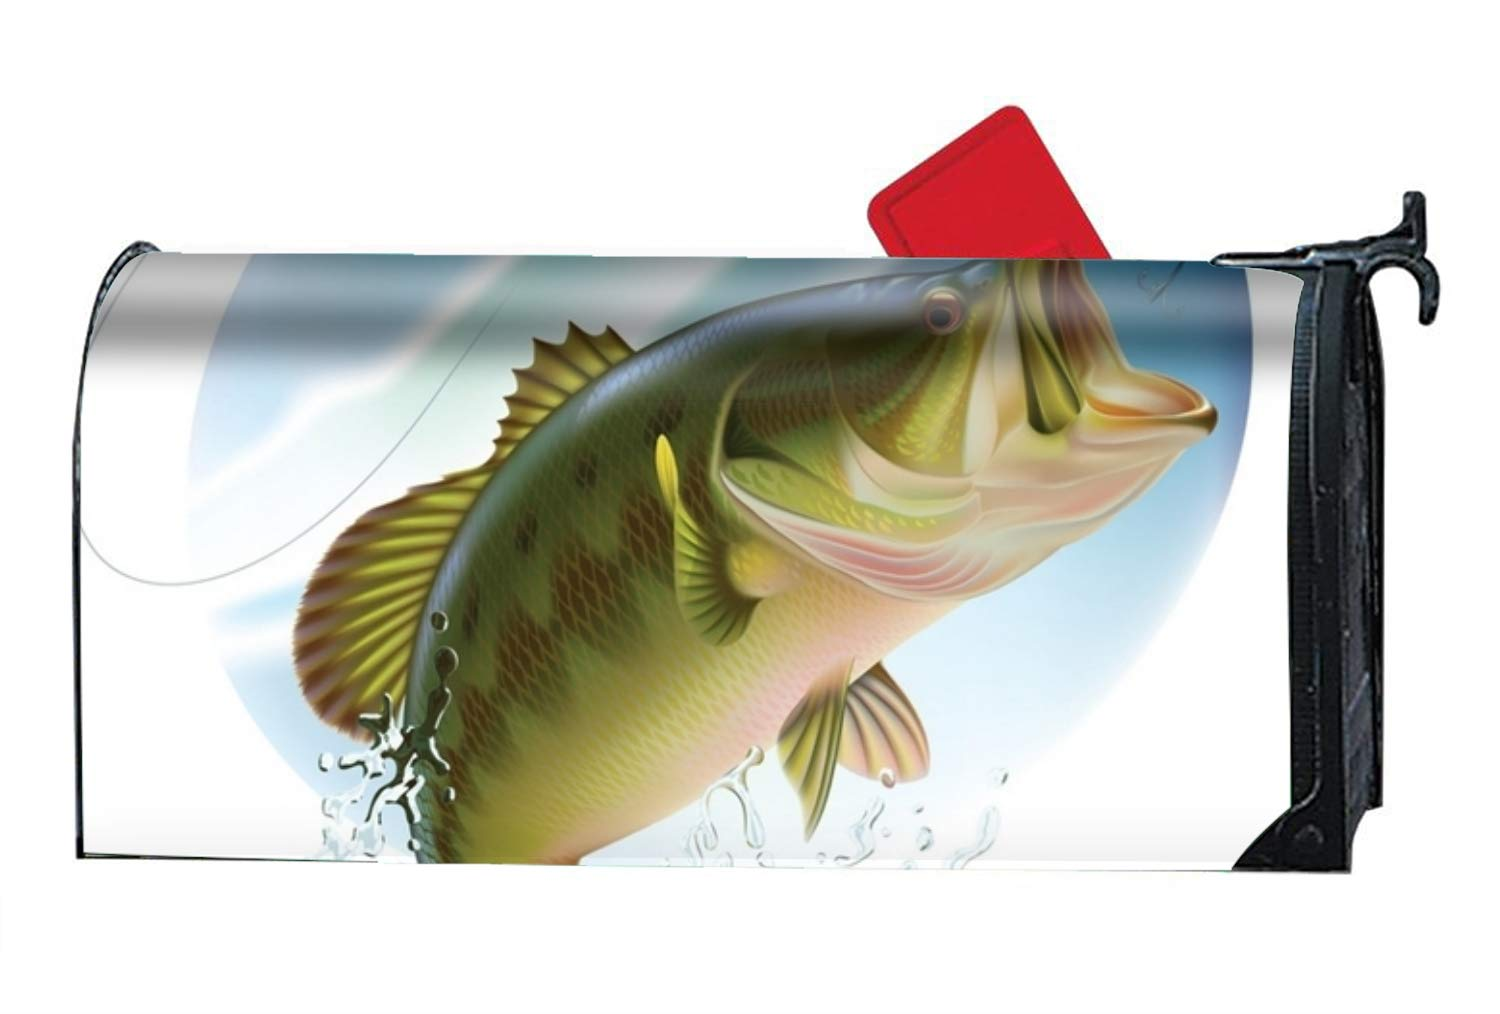 XW-FGF Mailbox Covers Big Bass Catches Mailbox Covers Household, Garden and Courtyard Magnetism